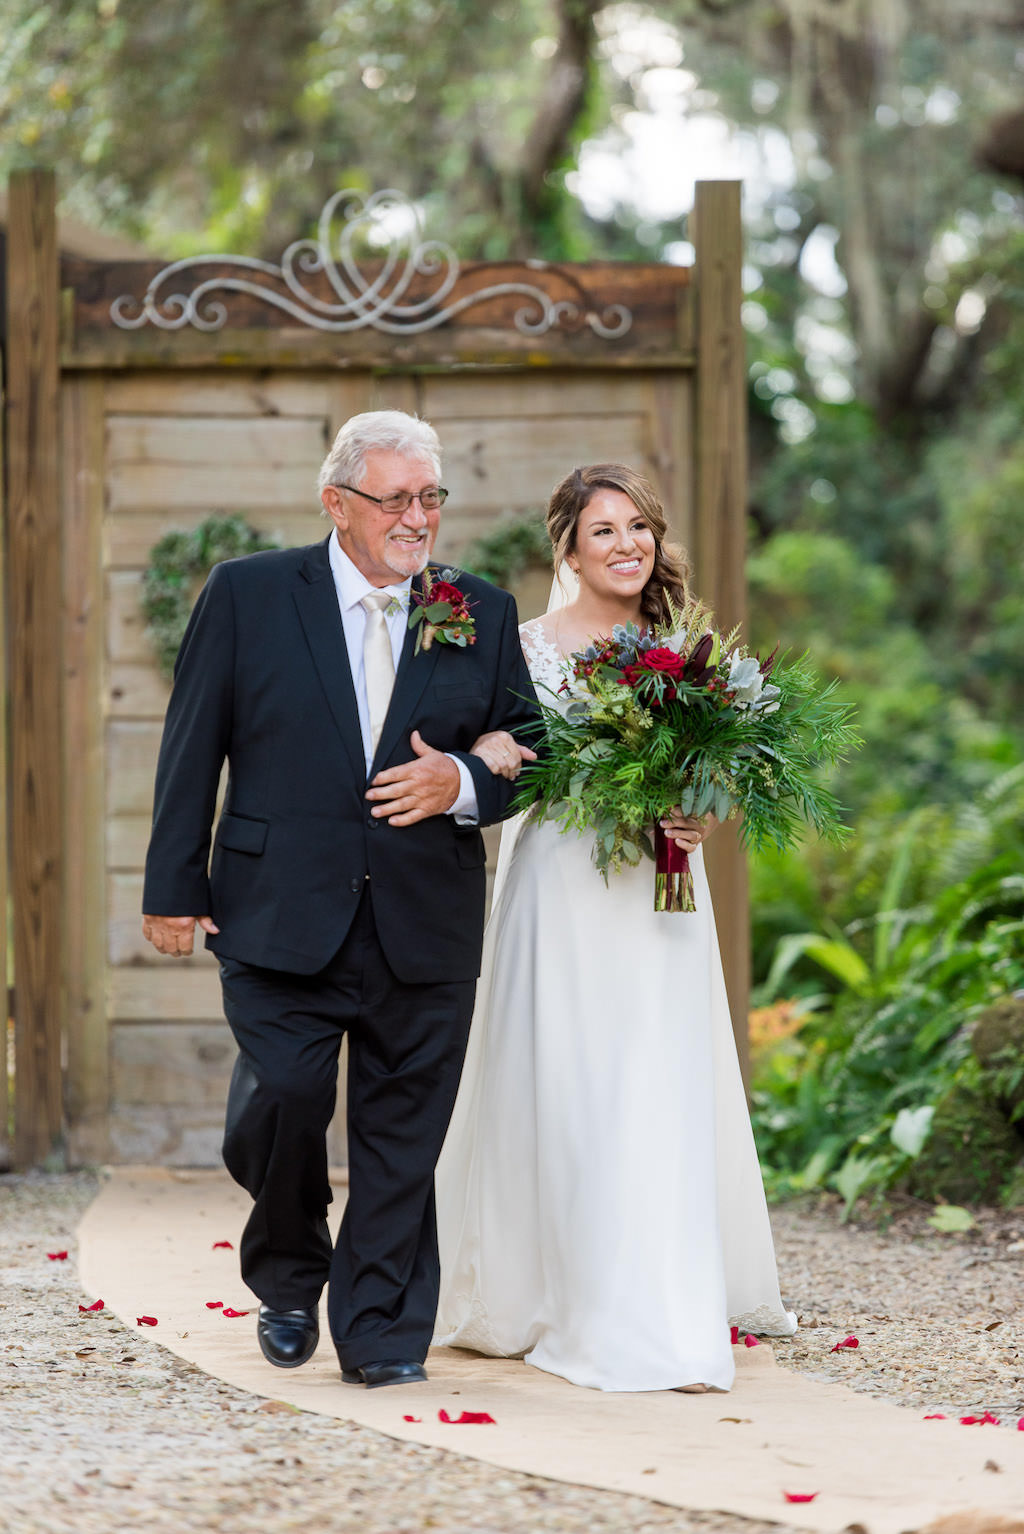 Bride and Father Walking Down the Aisle at Rustic Garden Outdoor Wedding Ceremony